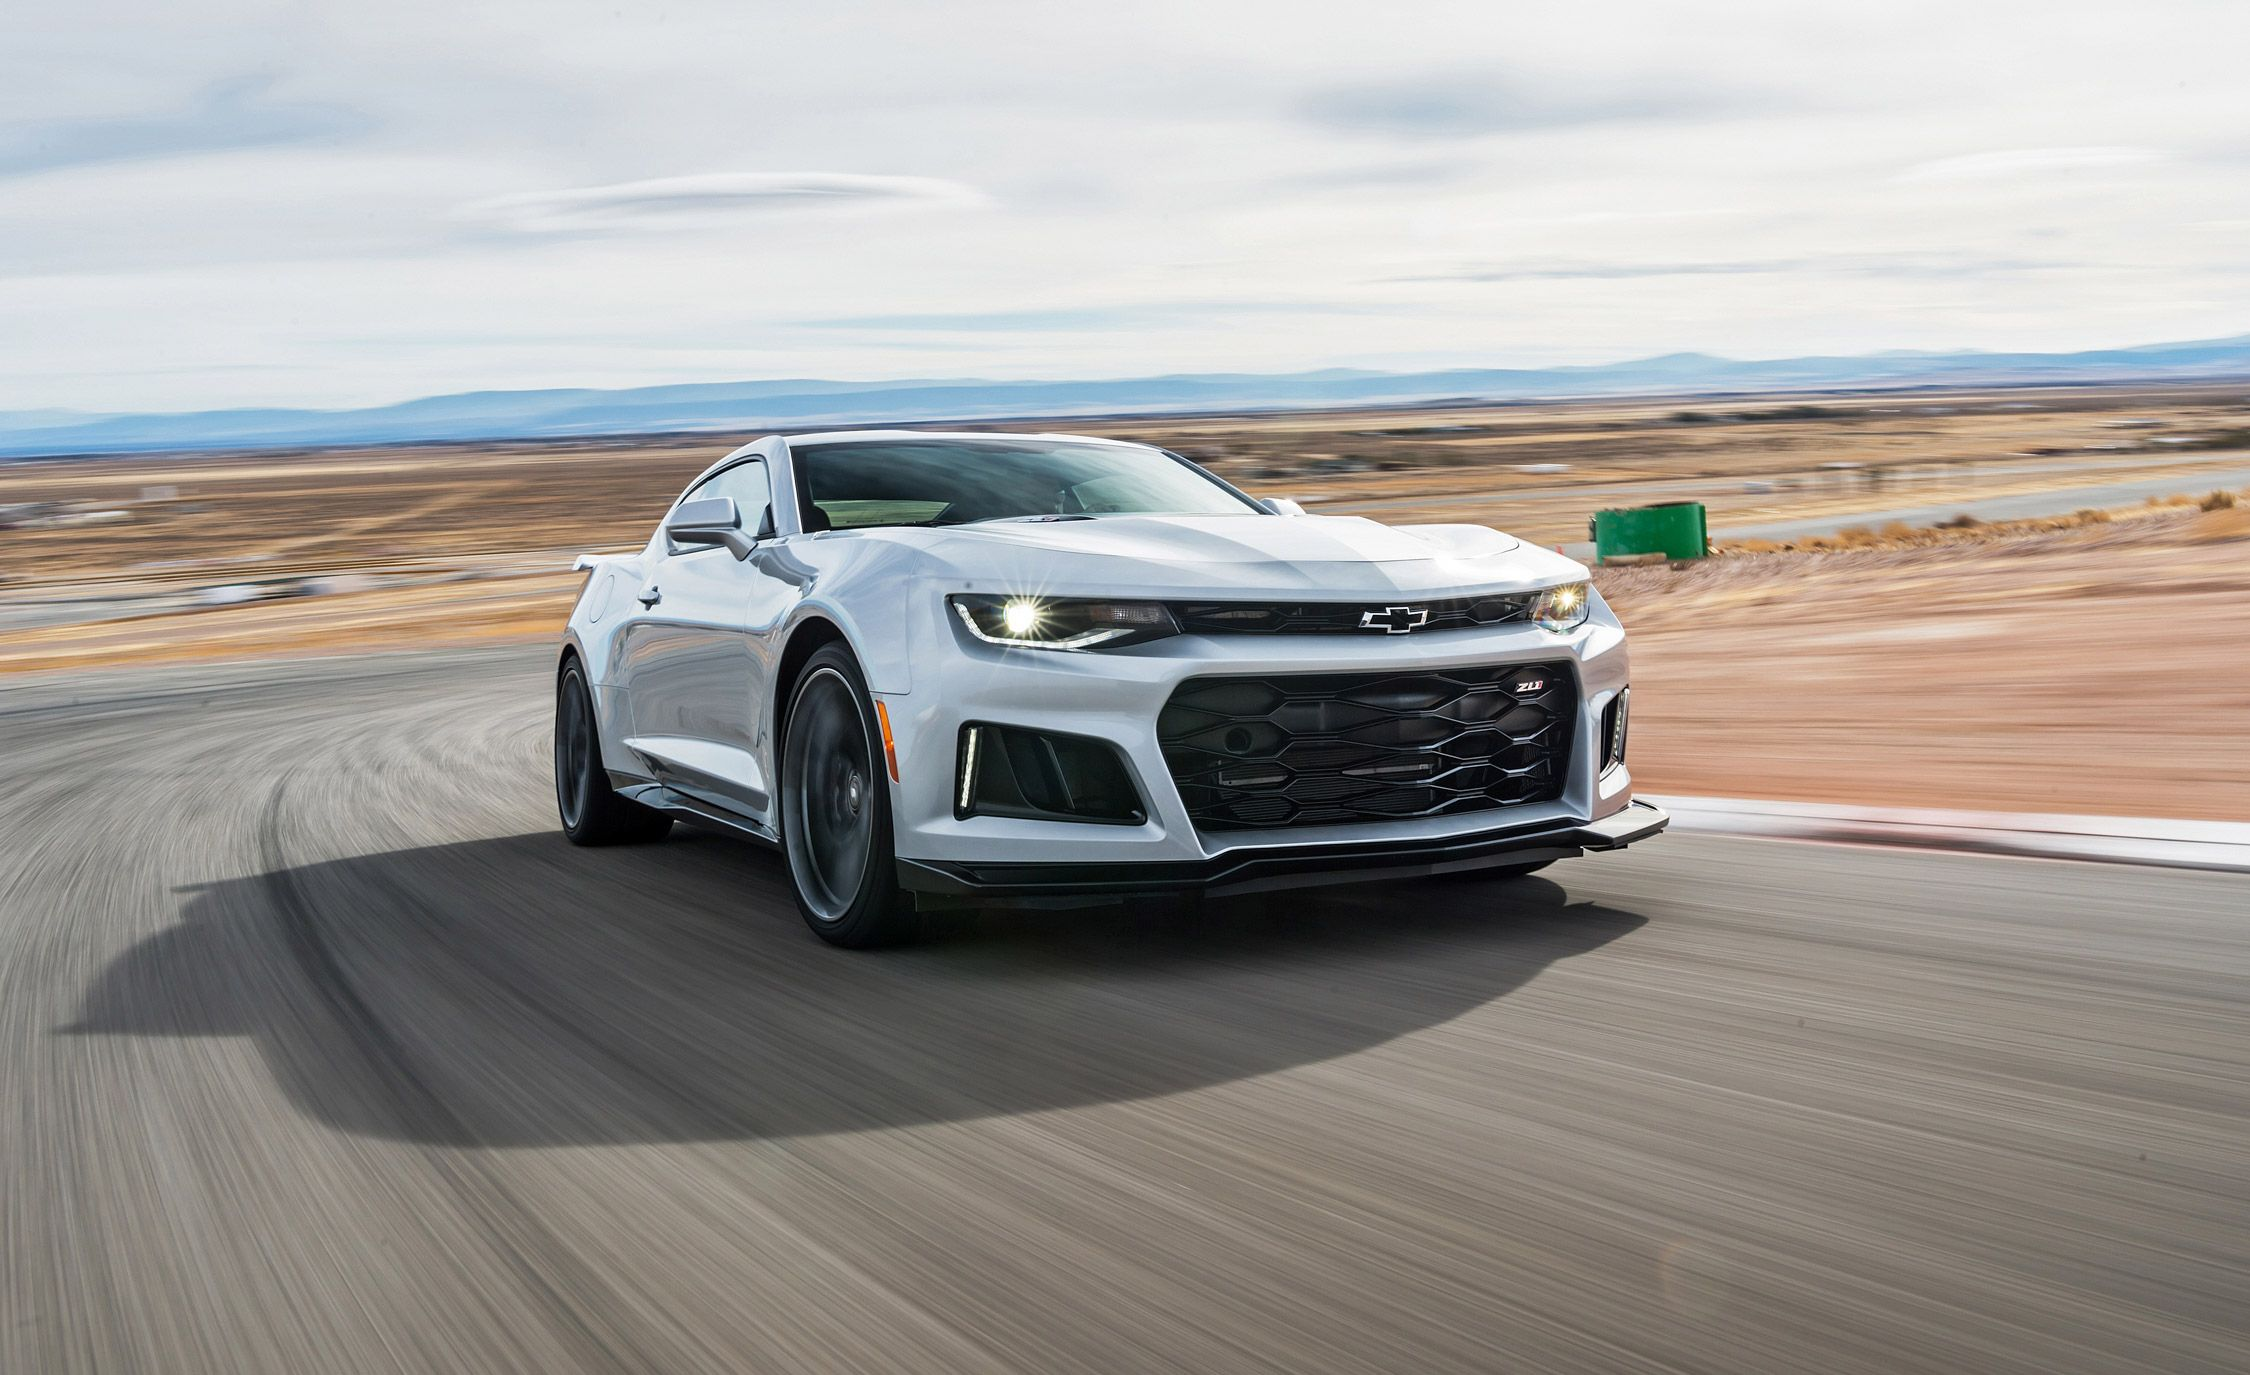 2019 Chevrolet Camaro Zl1 Reviews Chevrolet Camaro Zl1 Price